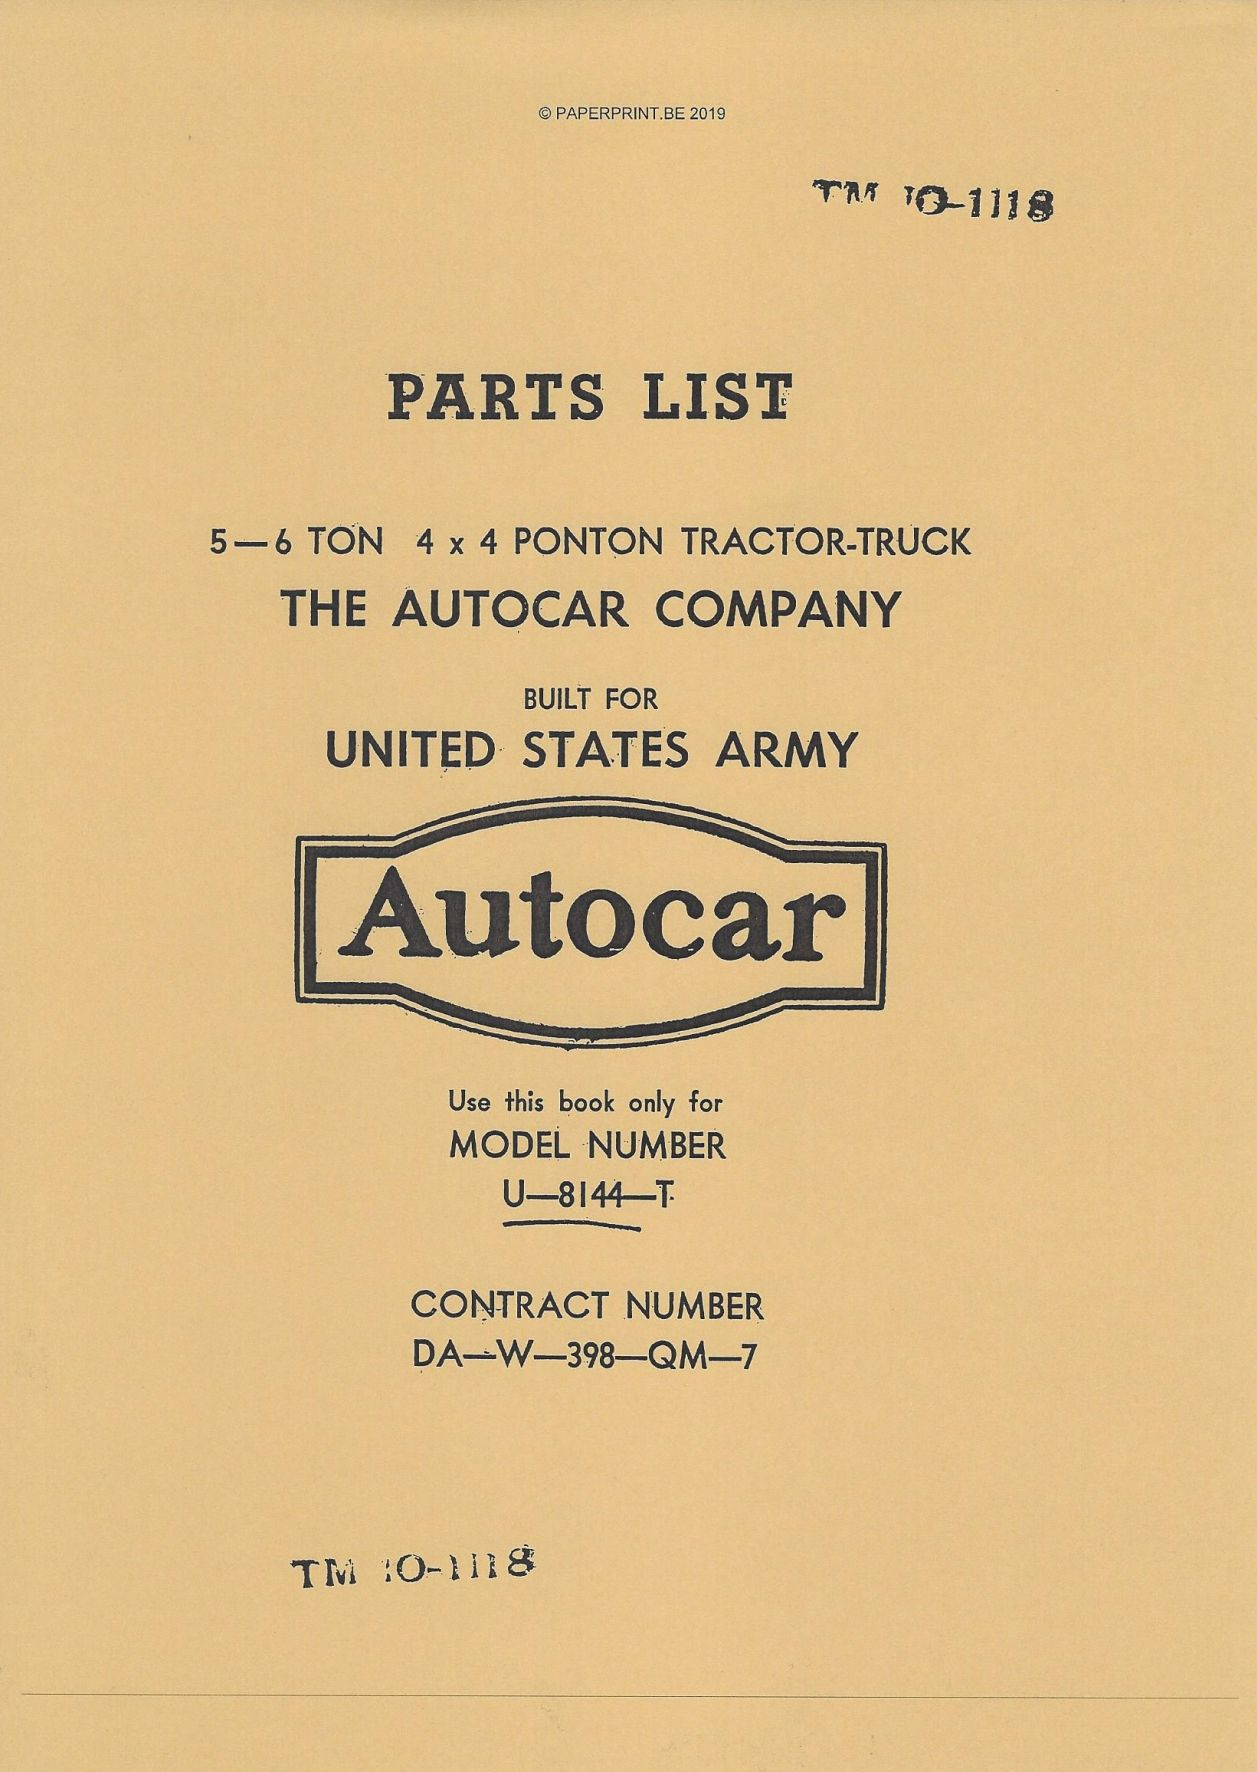 TM 10-1118 US AUTOCAR U-8144-T PARTS LIST